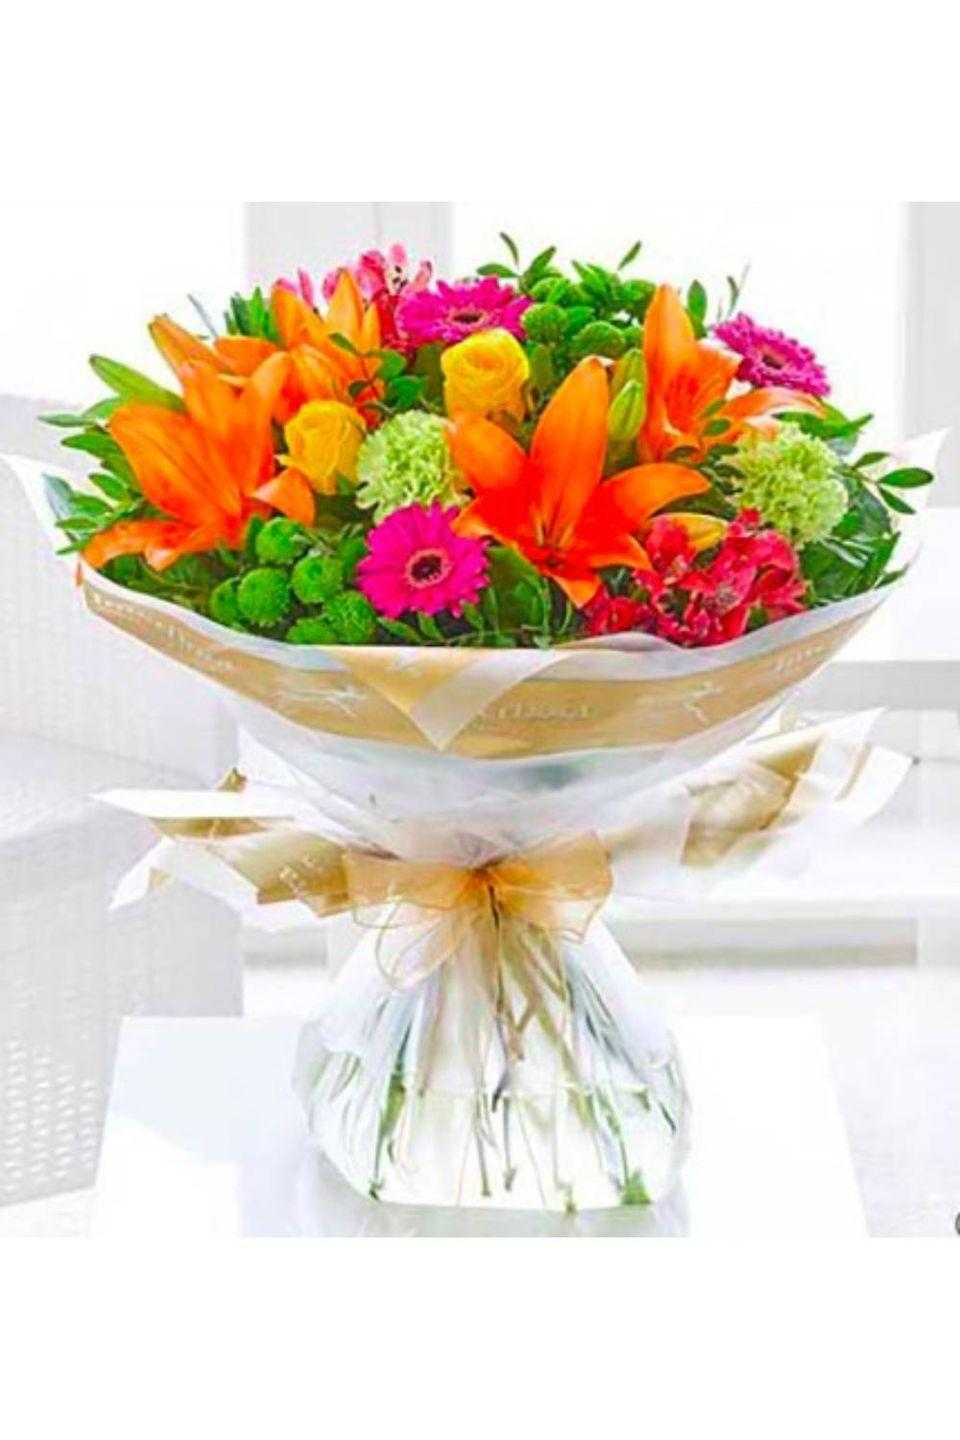 """<p><strong><a class=""""link rapid-noclick-resp"""" href=""""https://www.flowerssameday.co.uk/html/detail-images-2.asp?prodID=C00381VS"""" rel=""""nofollow noopener"""" target=""""_blank"""" data-ylk=""""slk:BUY NOW"""">BUY NOW</a></strong><strong> Vibrant hand-tied, £</strong><strong>38.99, </strong><strong>Flowers Same Day</strong></p><p>The clue's in the name at Flowers Same Day, who offer afternoon delivery on all orders placed up to 14:45, and the potential for same day delivery after that time for orders placed by telephone (it depends on the driver's availability).</p>"""